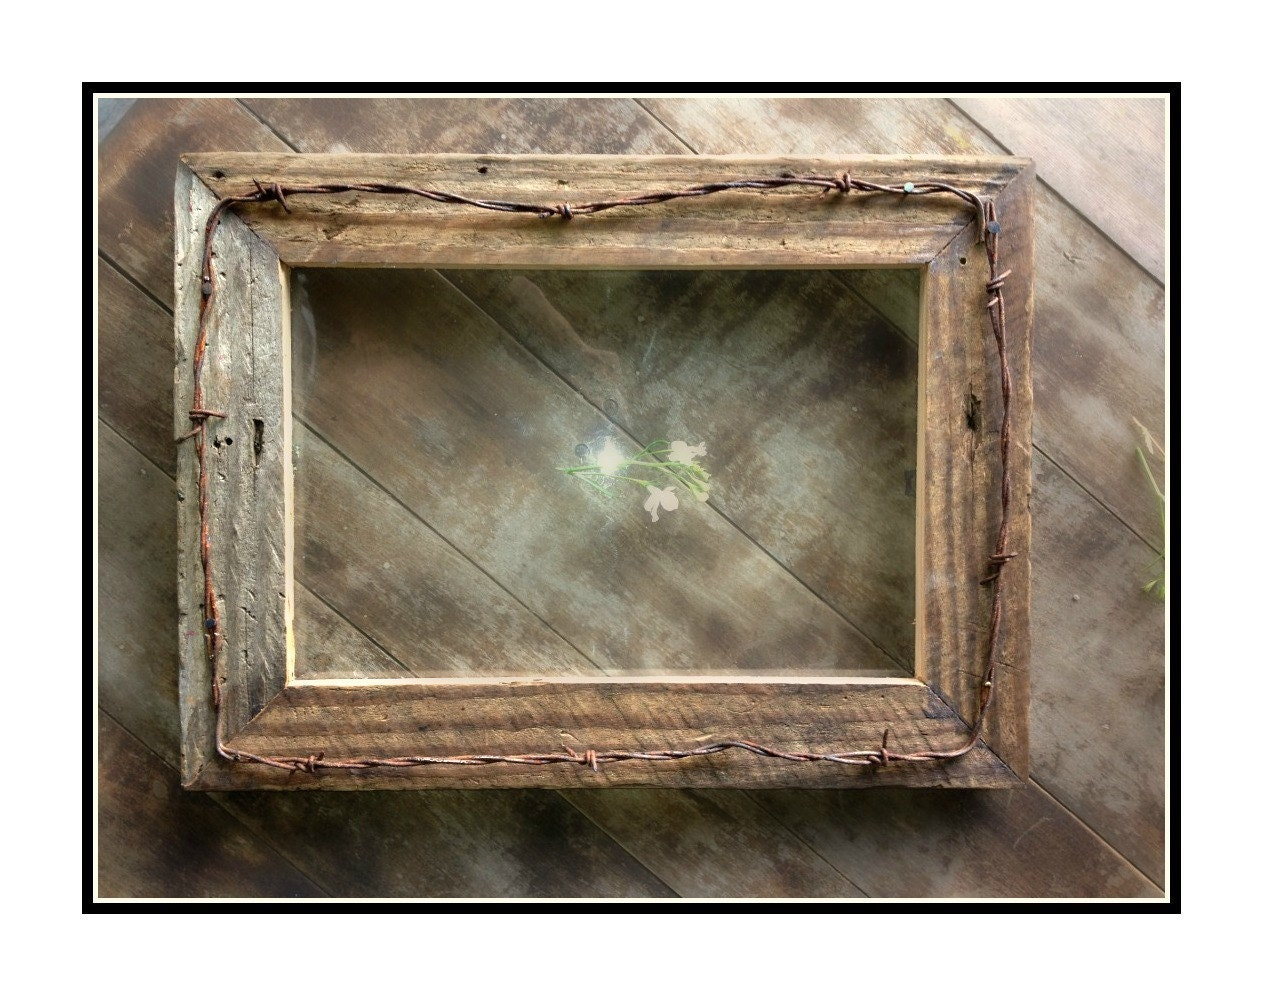 16x16 Rustic Barnwood Picture Frames made from Reclaimed ... |Rustic Wooden Picture Frame